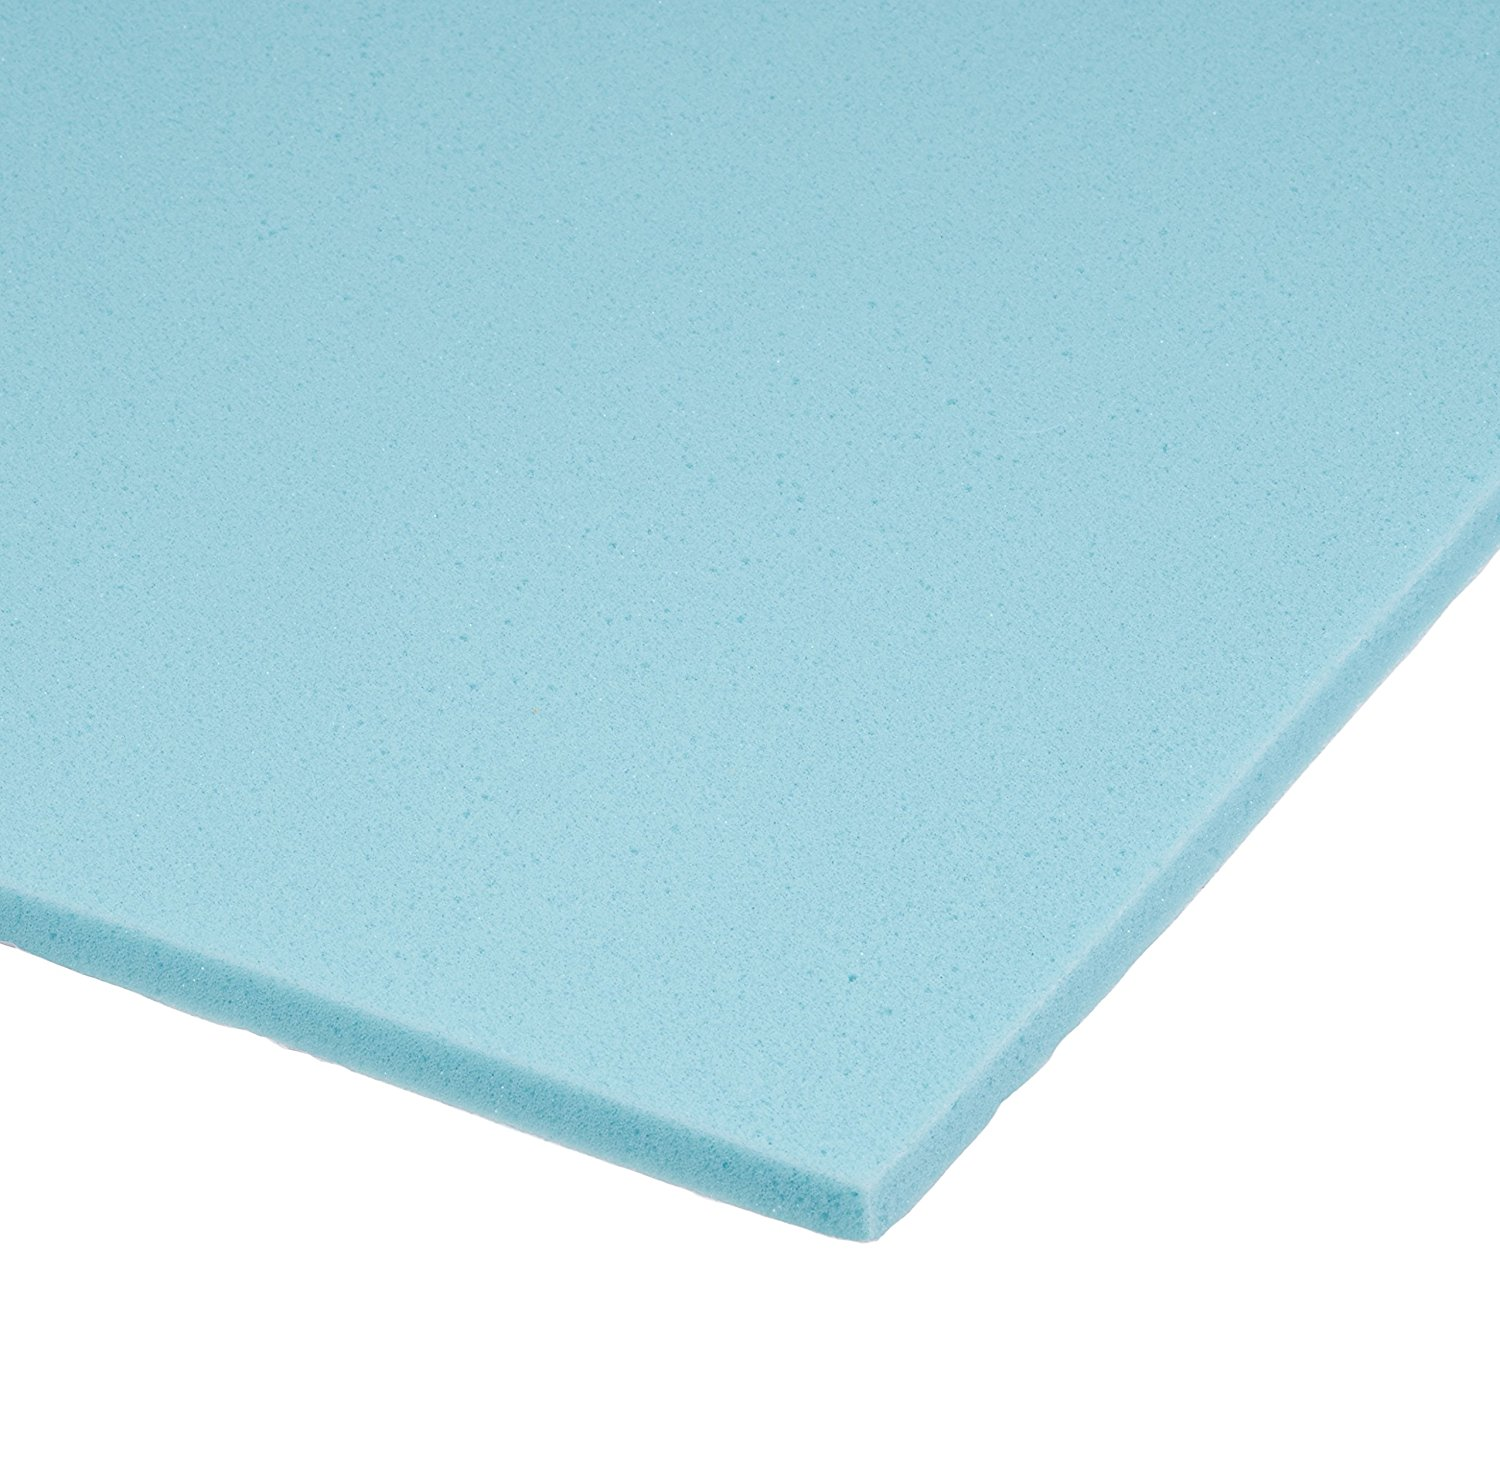 Braces Casts Self-Adhesive Padding Sheets for Splints Rolyan Ultra-Ease Foam Padding 1//4 Thick